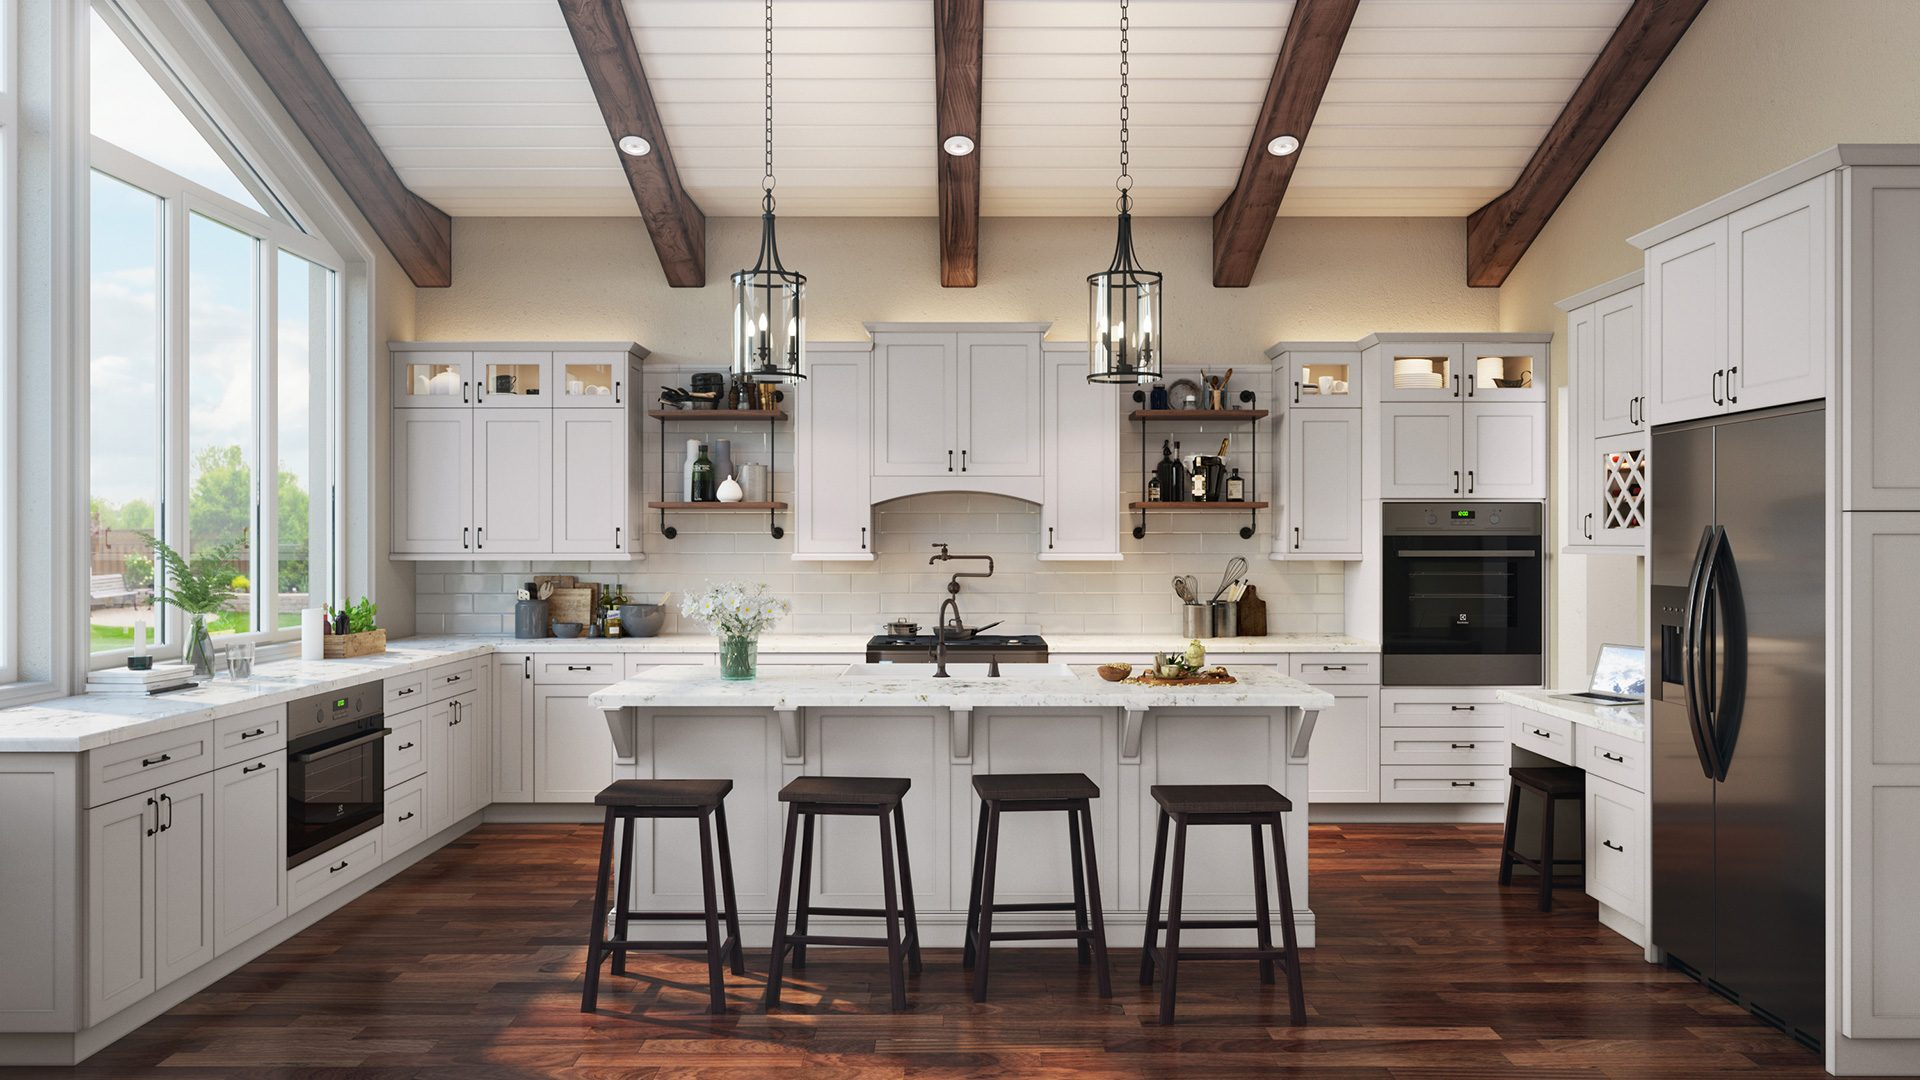 Kitchen Cabinets And Closet Spaces